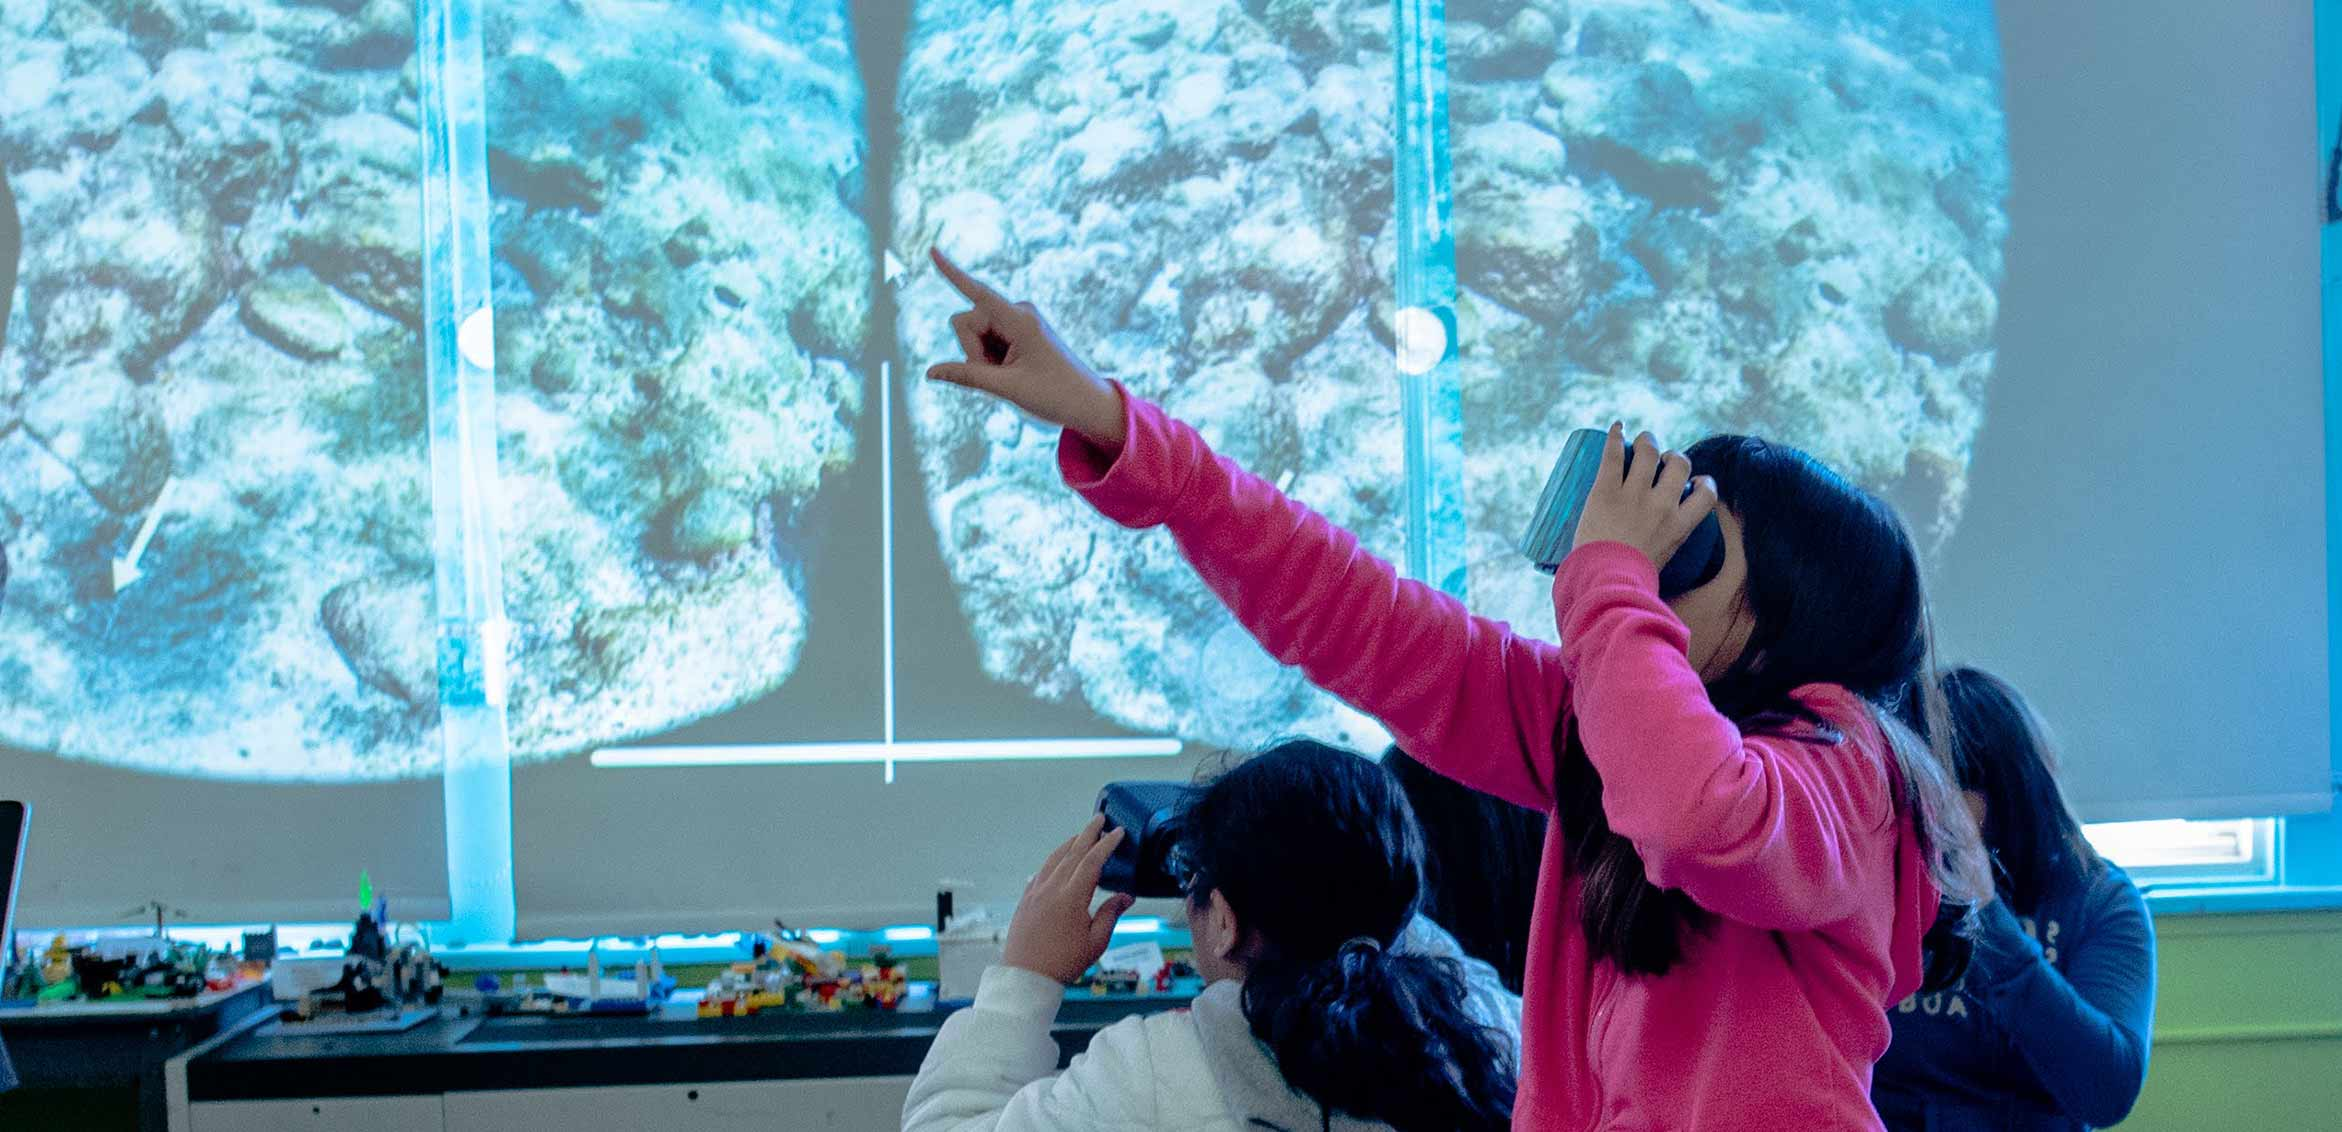 Student in virtual reality headset showing an underwater scene